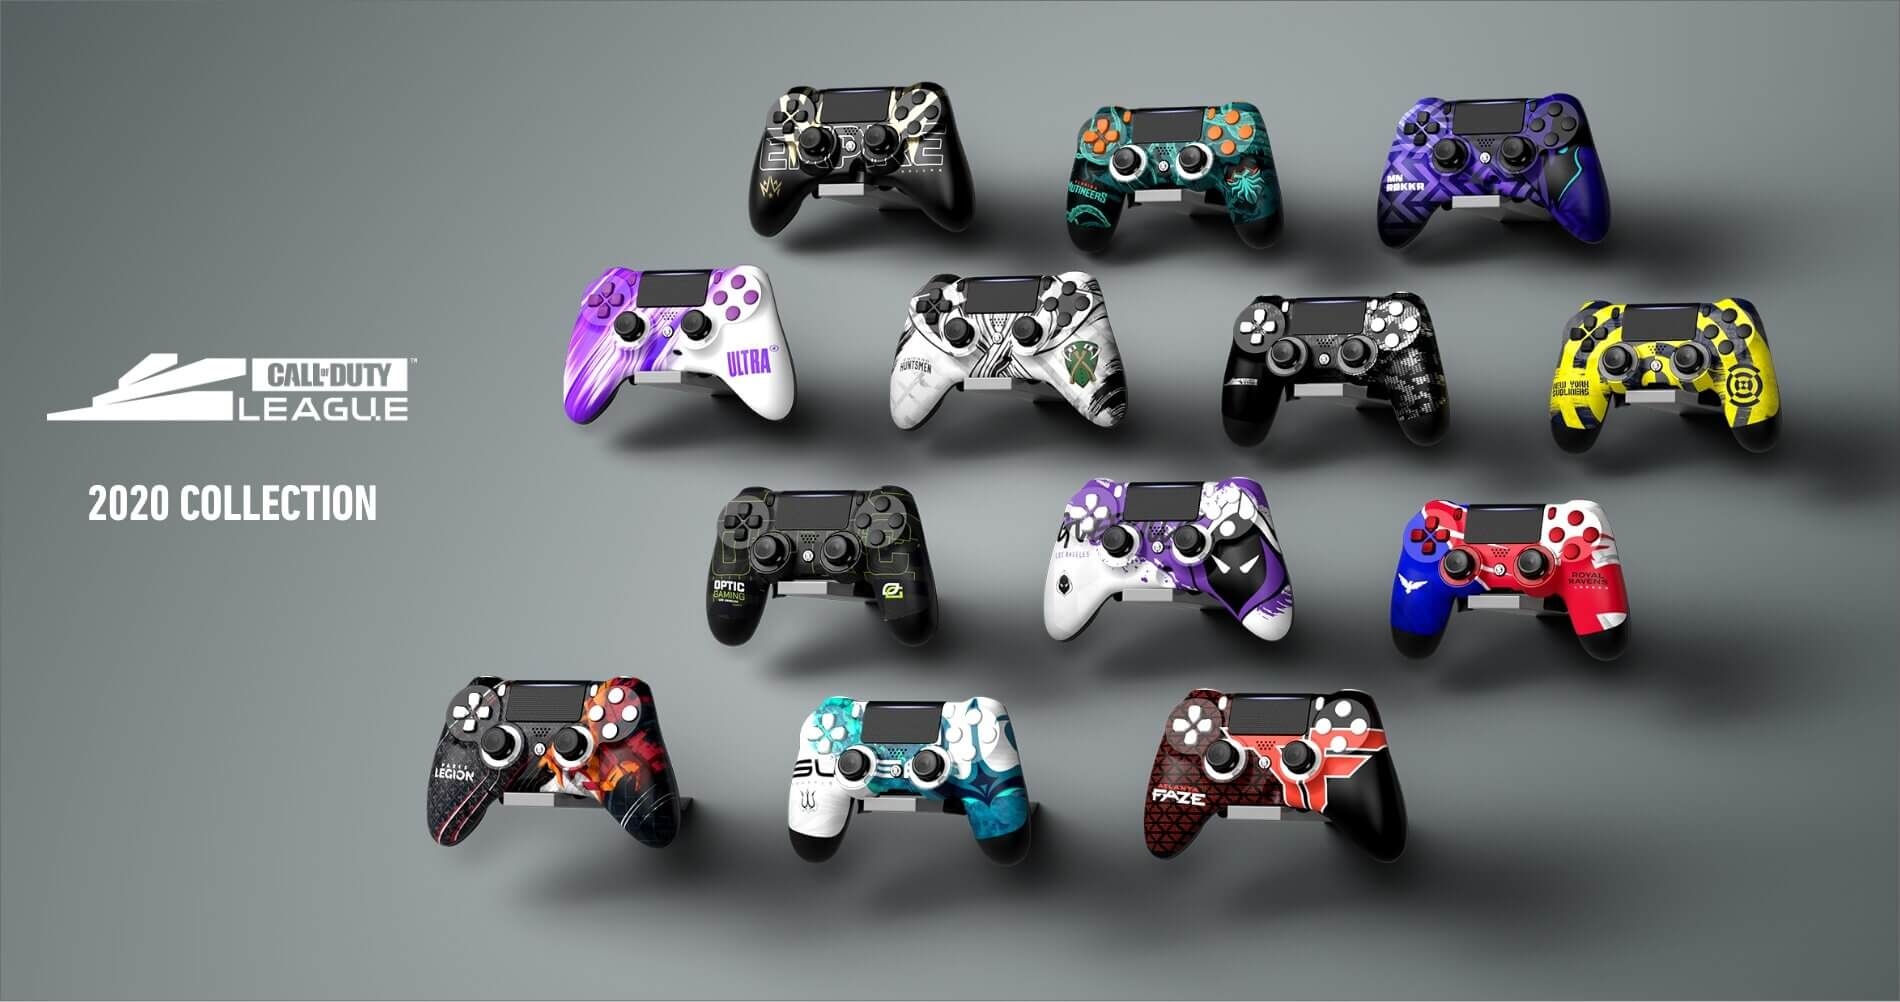 https://scufgaming.com/media/wysiwyg/affiliates/cdl/Call of Duty League 2020 Collection